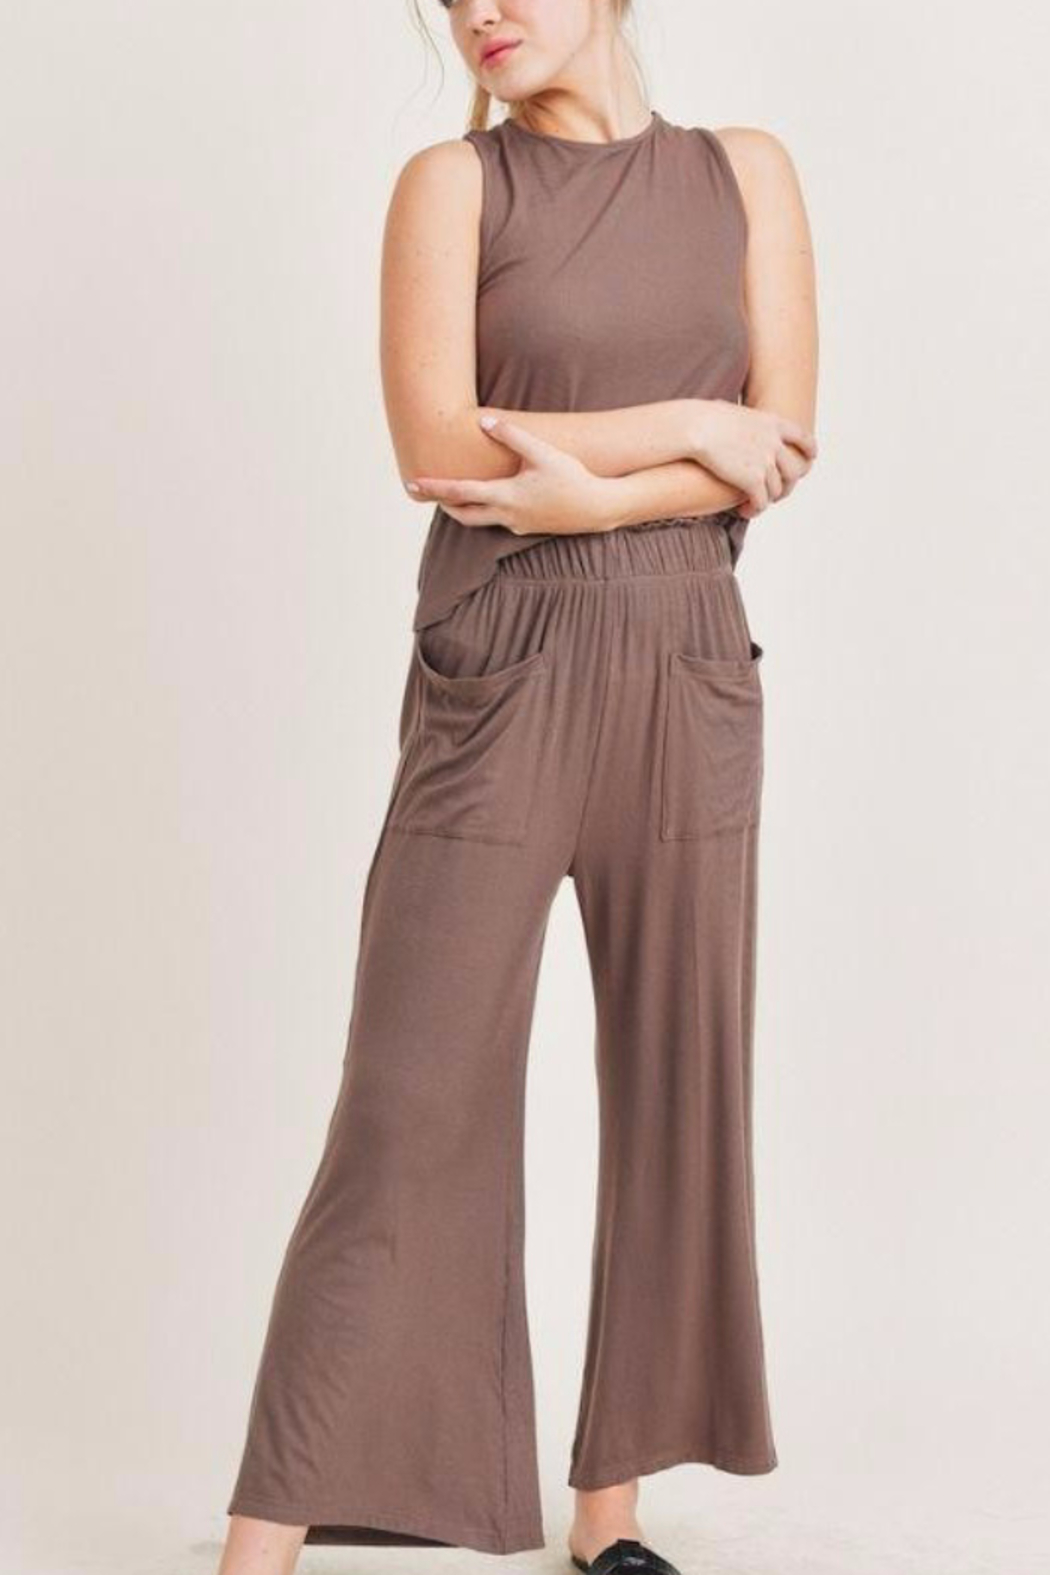 Patricia's Presents Loungewear Matching Set-Coco - Main Image